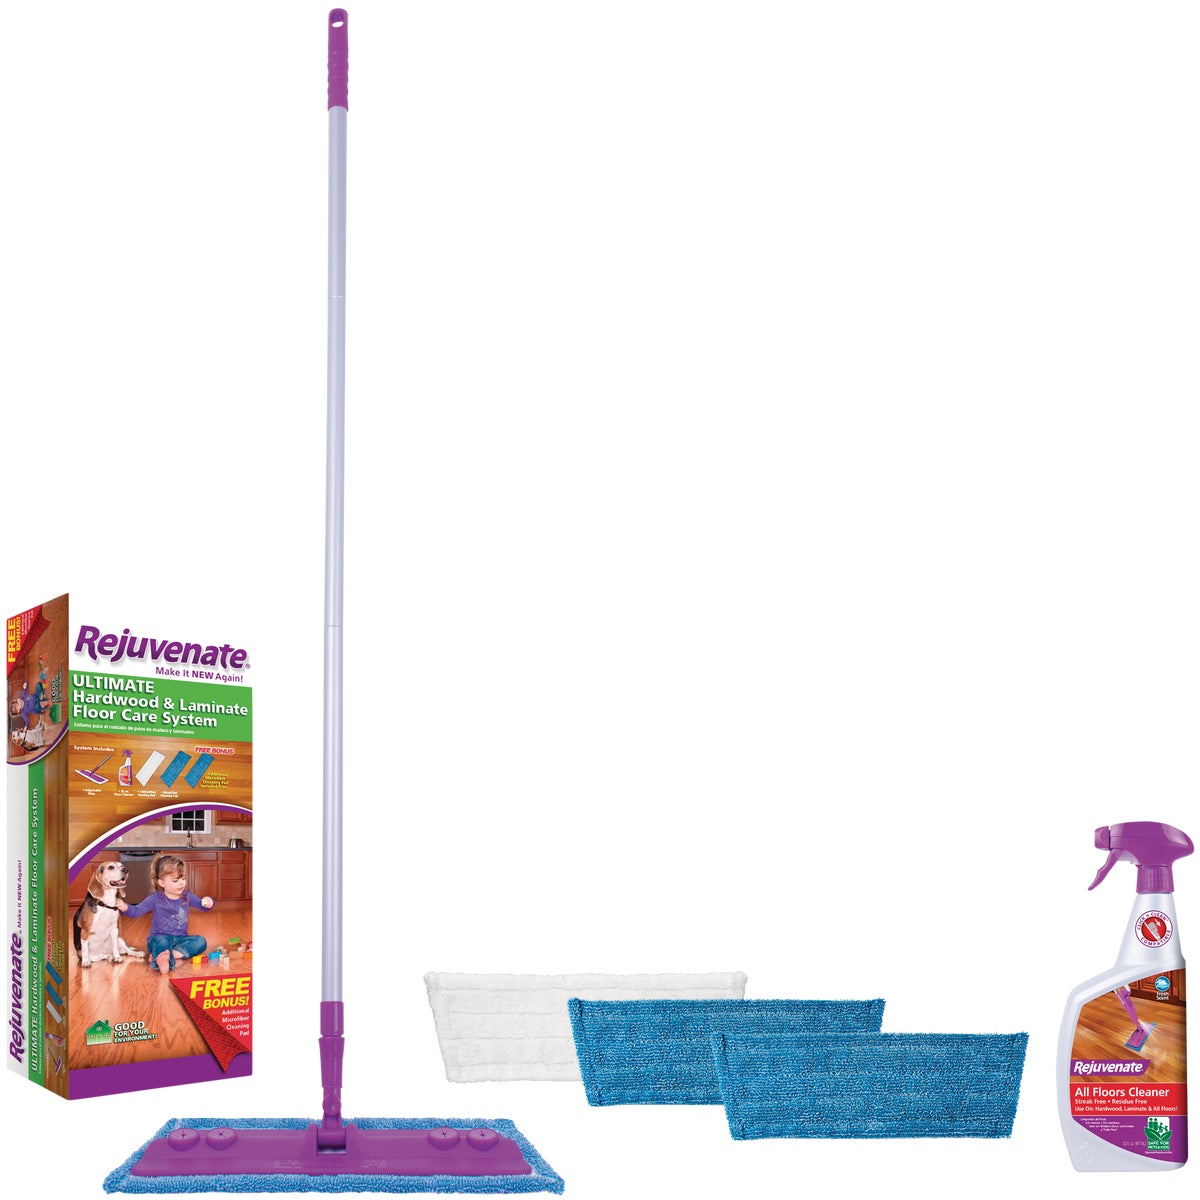 Rejuvenate Hardwood & Laminate Floor Care System, RJMOPKIT